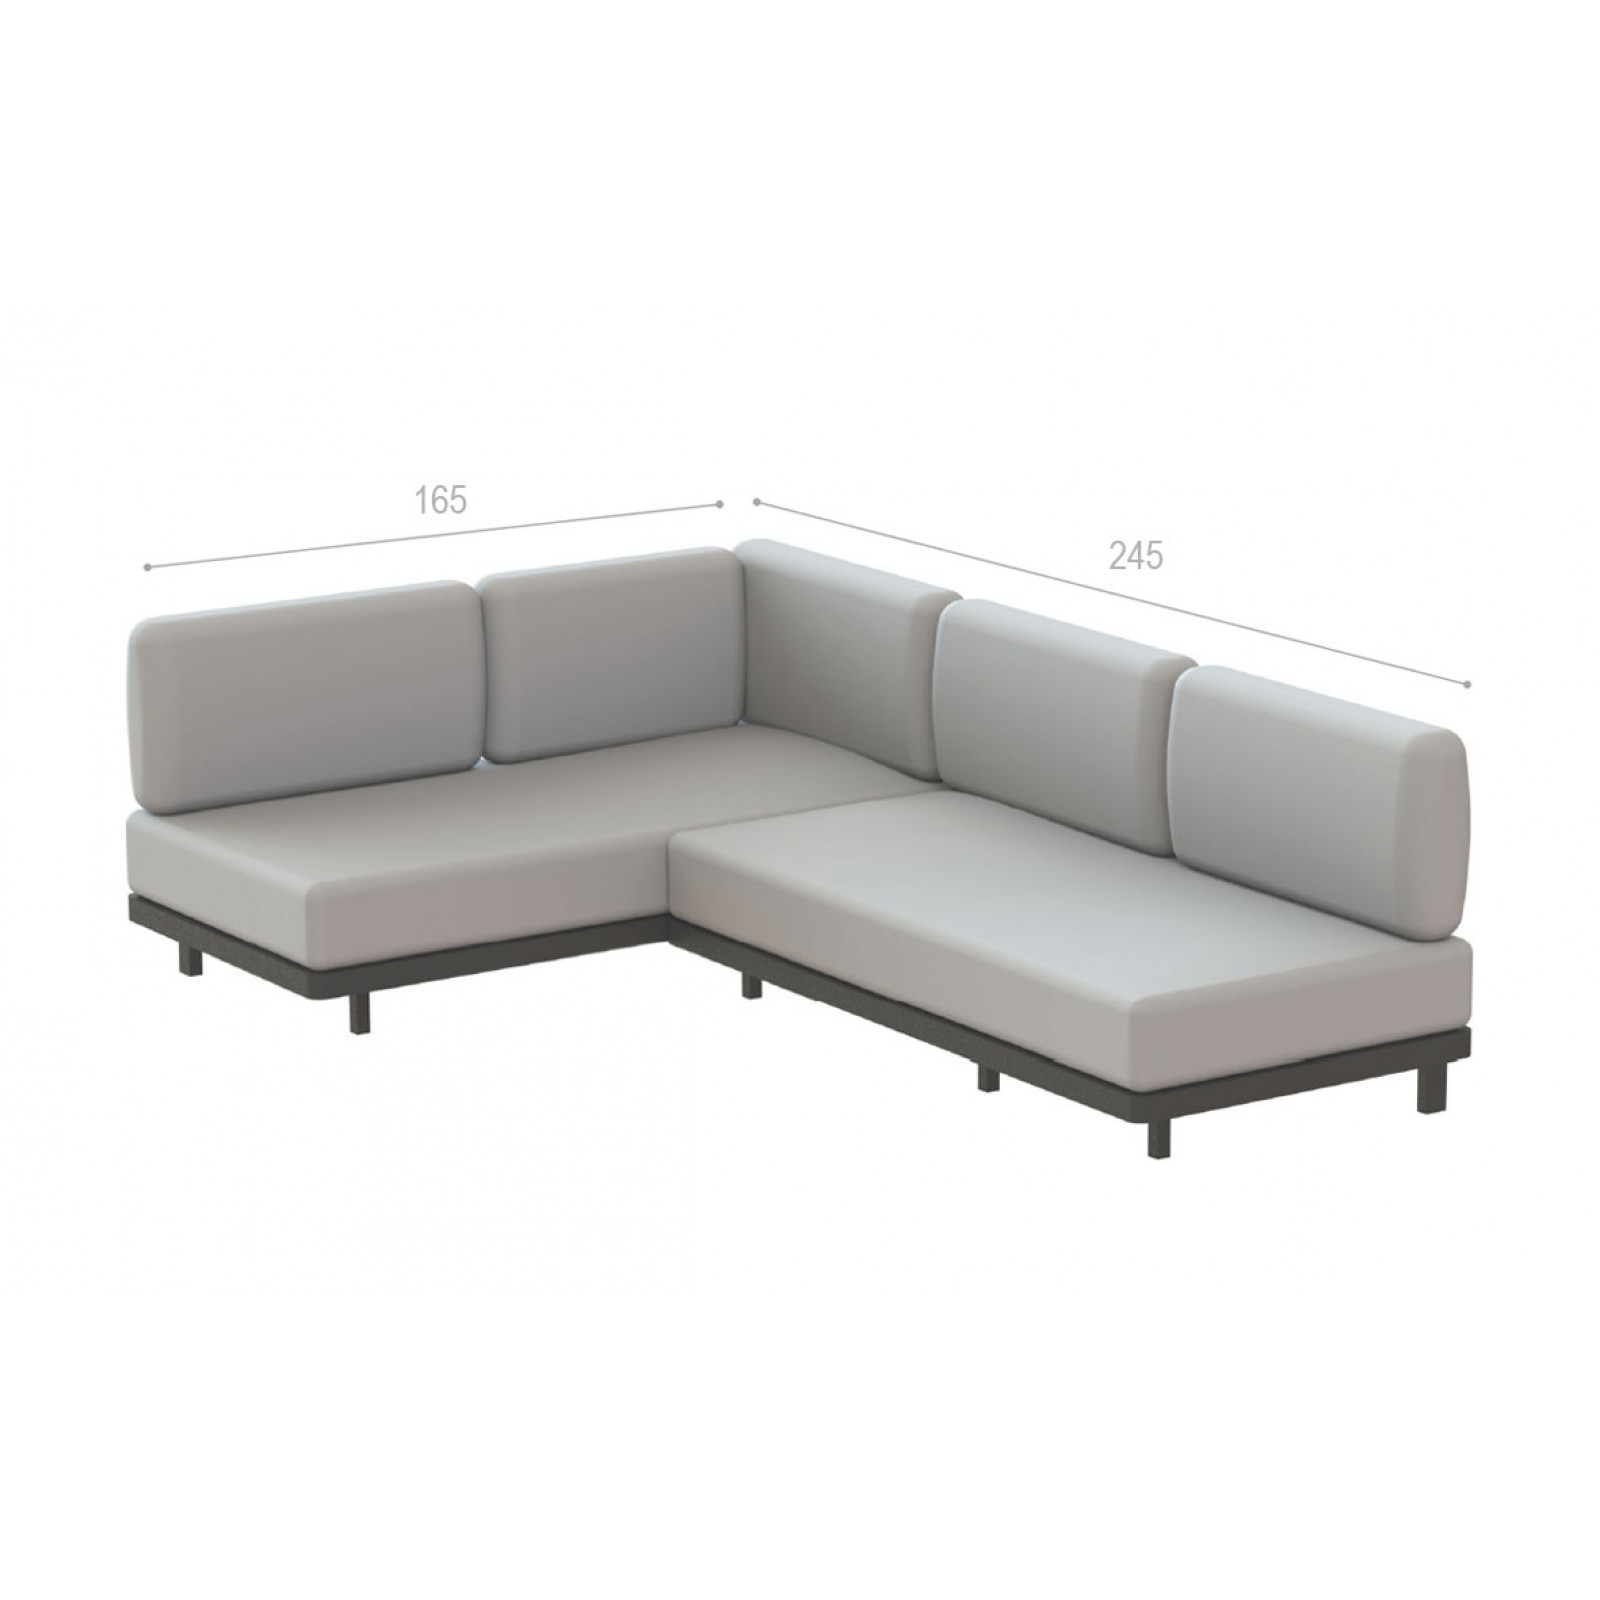 Royal Botania Red Label • Alura Lounge Ecksofa 245 rechts